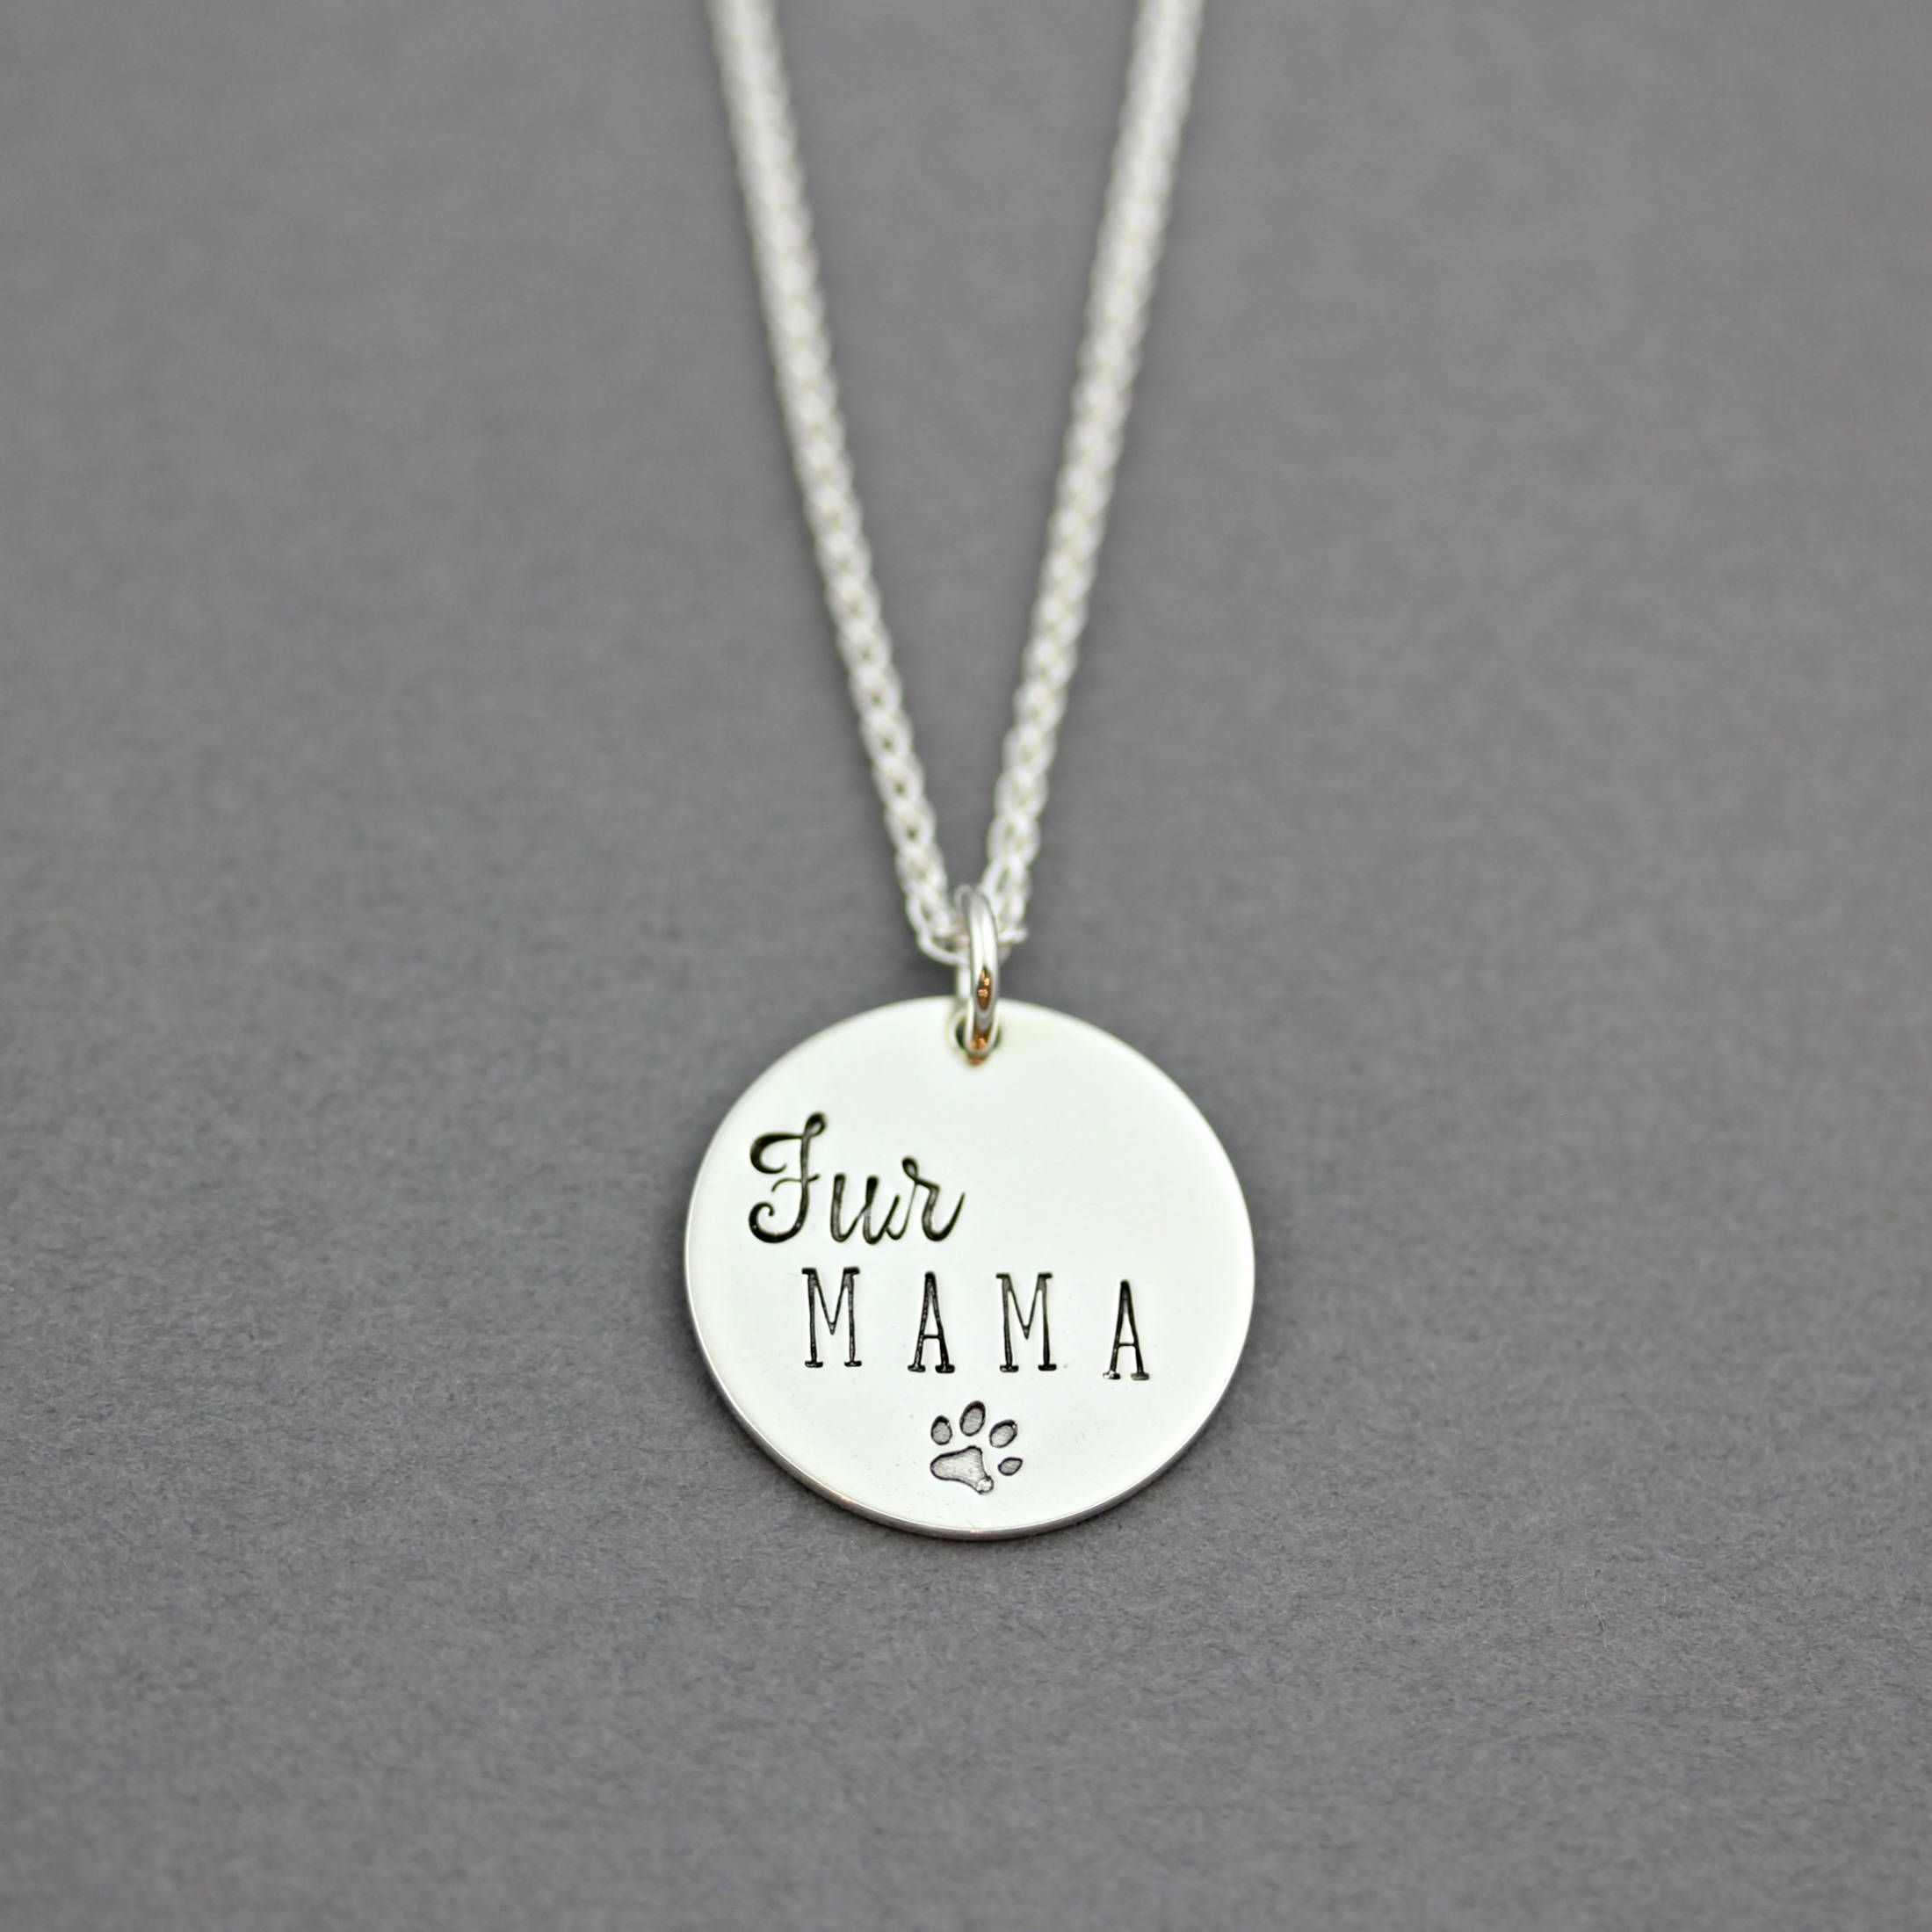 a by custom designmejewelry mother hand metal necklace made layered mothers stamped s mixed buy